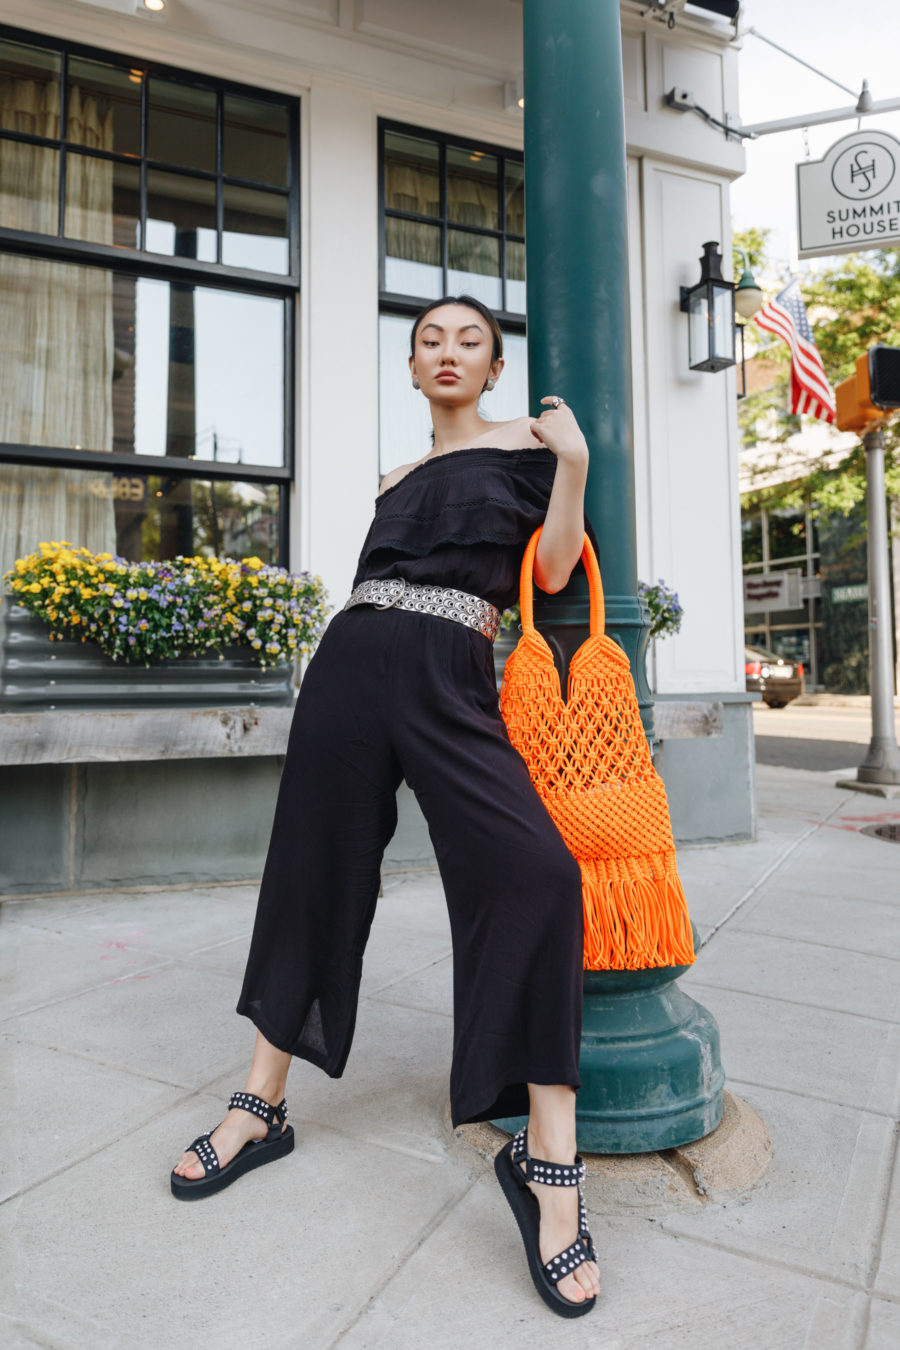 summer weekly outfits featuring walmart jumpsuit steve madden sandals and orange macrame bag // Jessica Wang - Notjessfashion.com